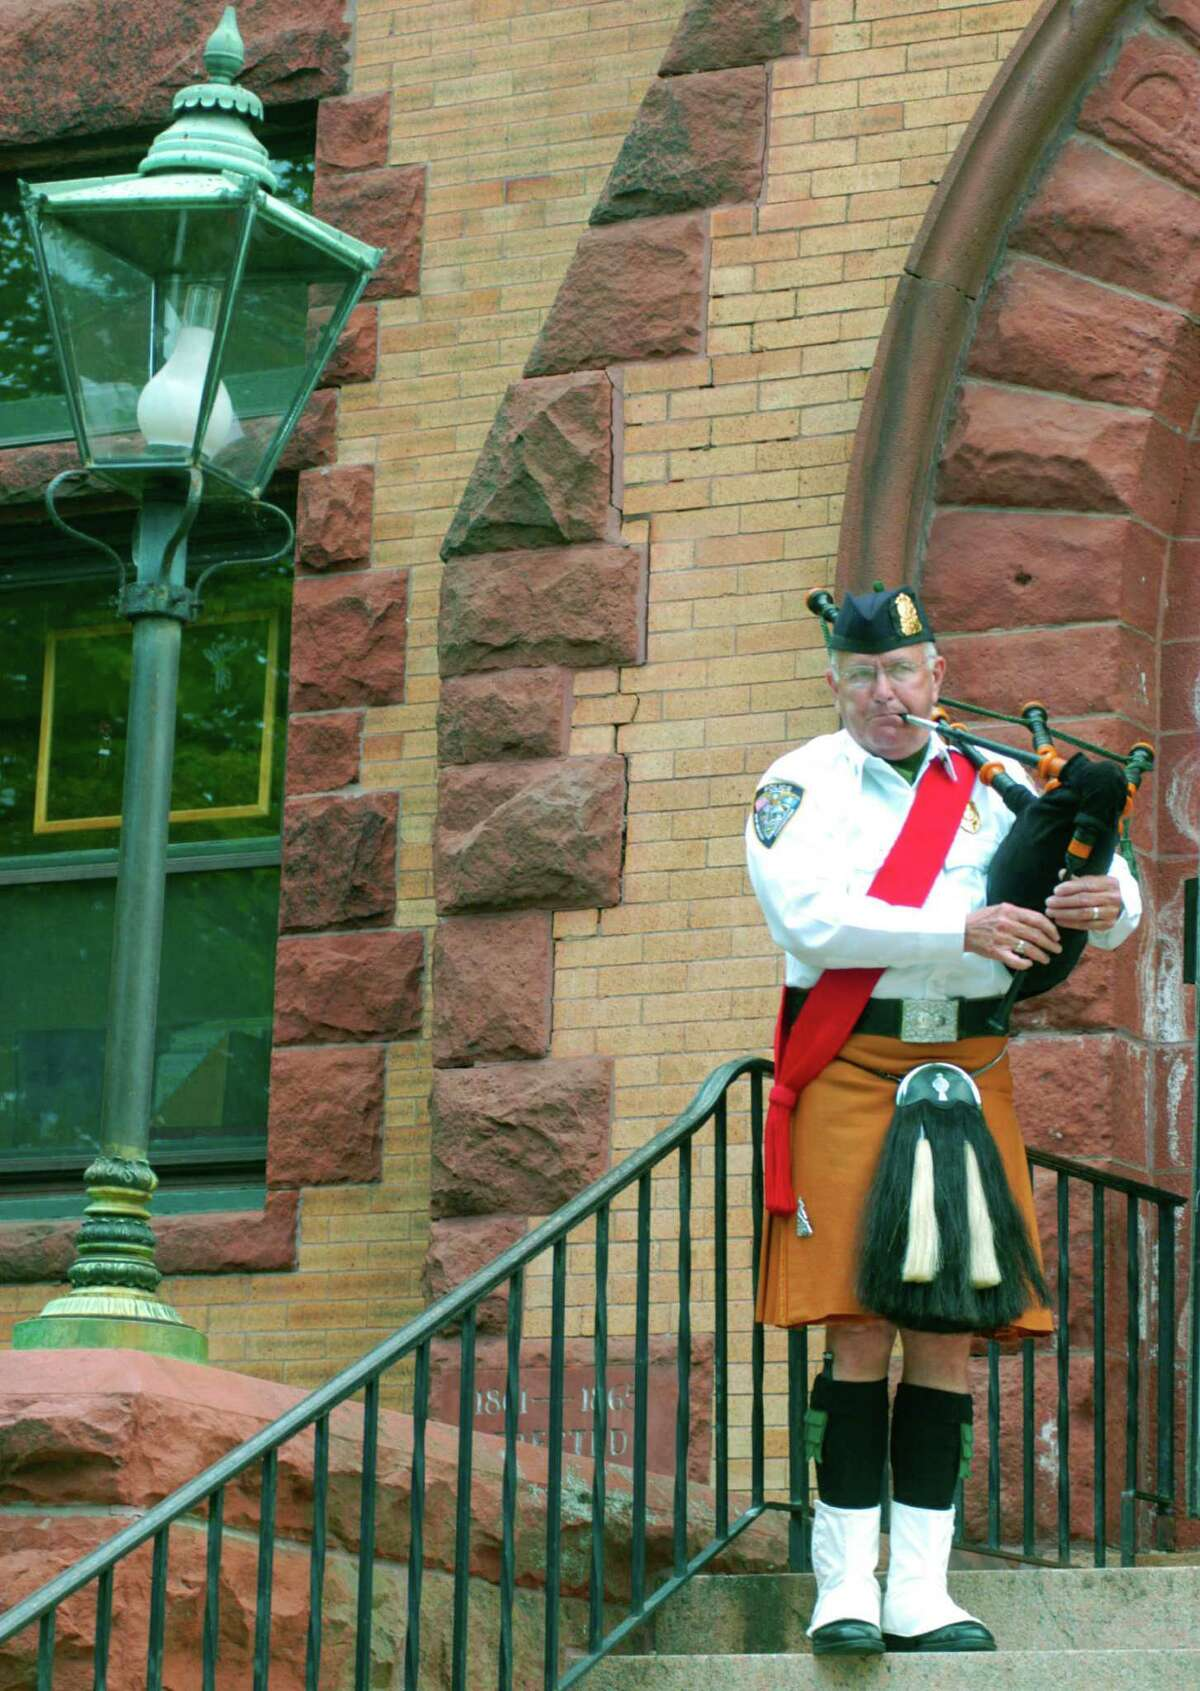 Patrick Maguire performs on bagpipes during the Memorial Day ceremony on the steps of New Milford Public Library, May 25, 2015